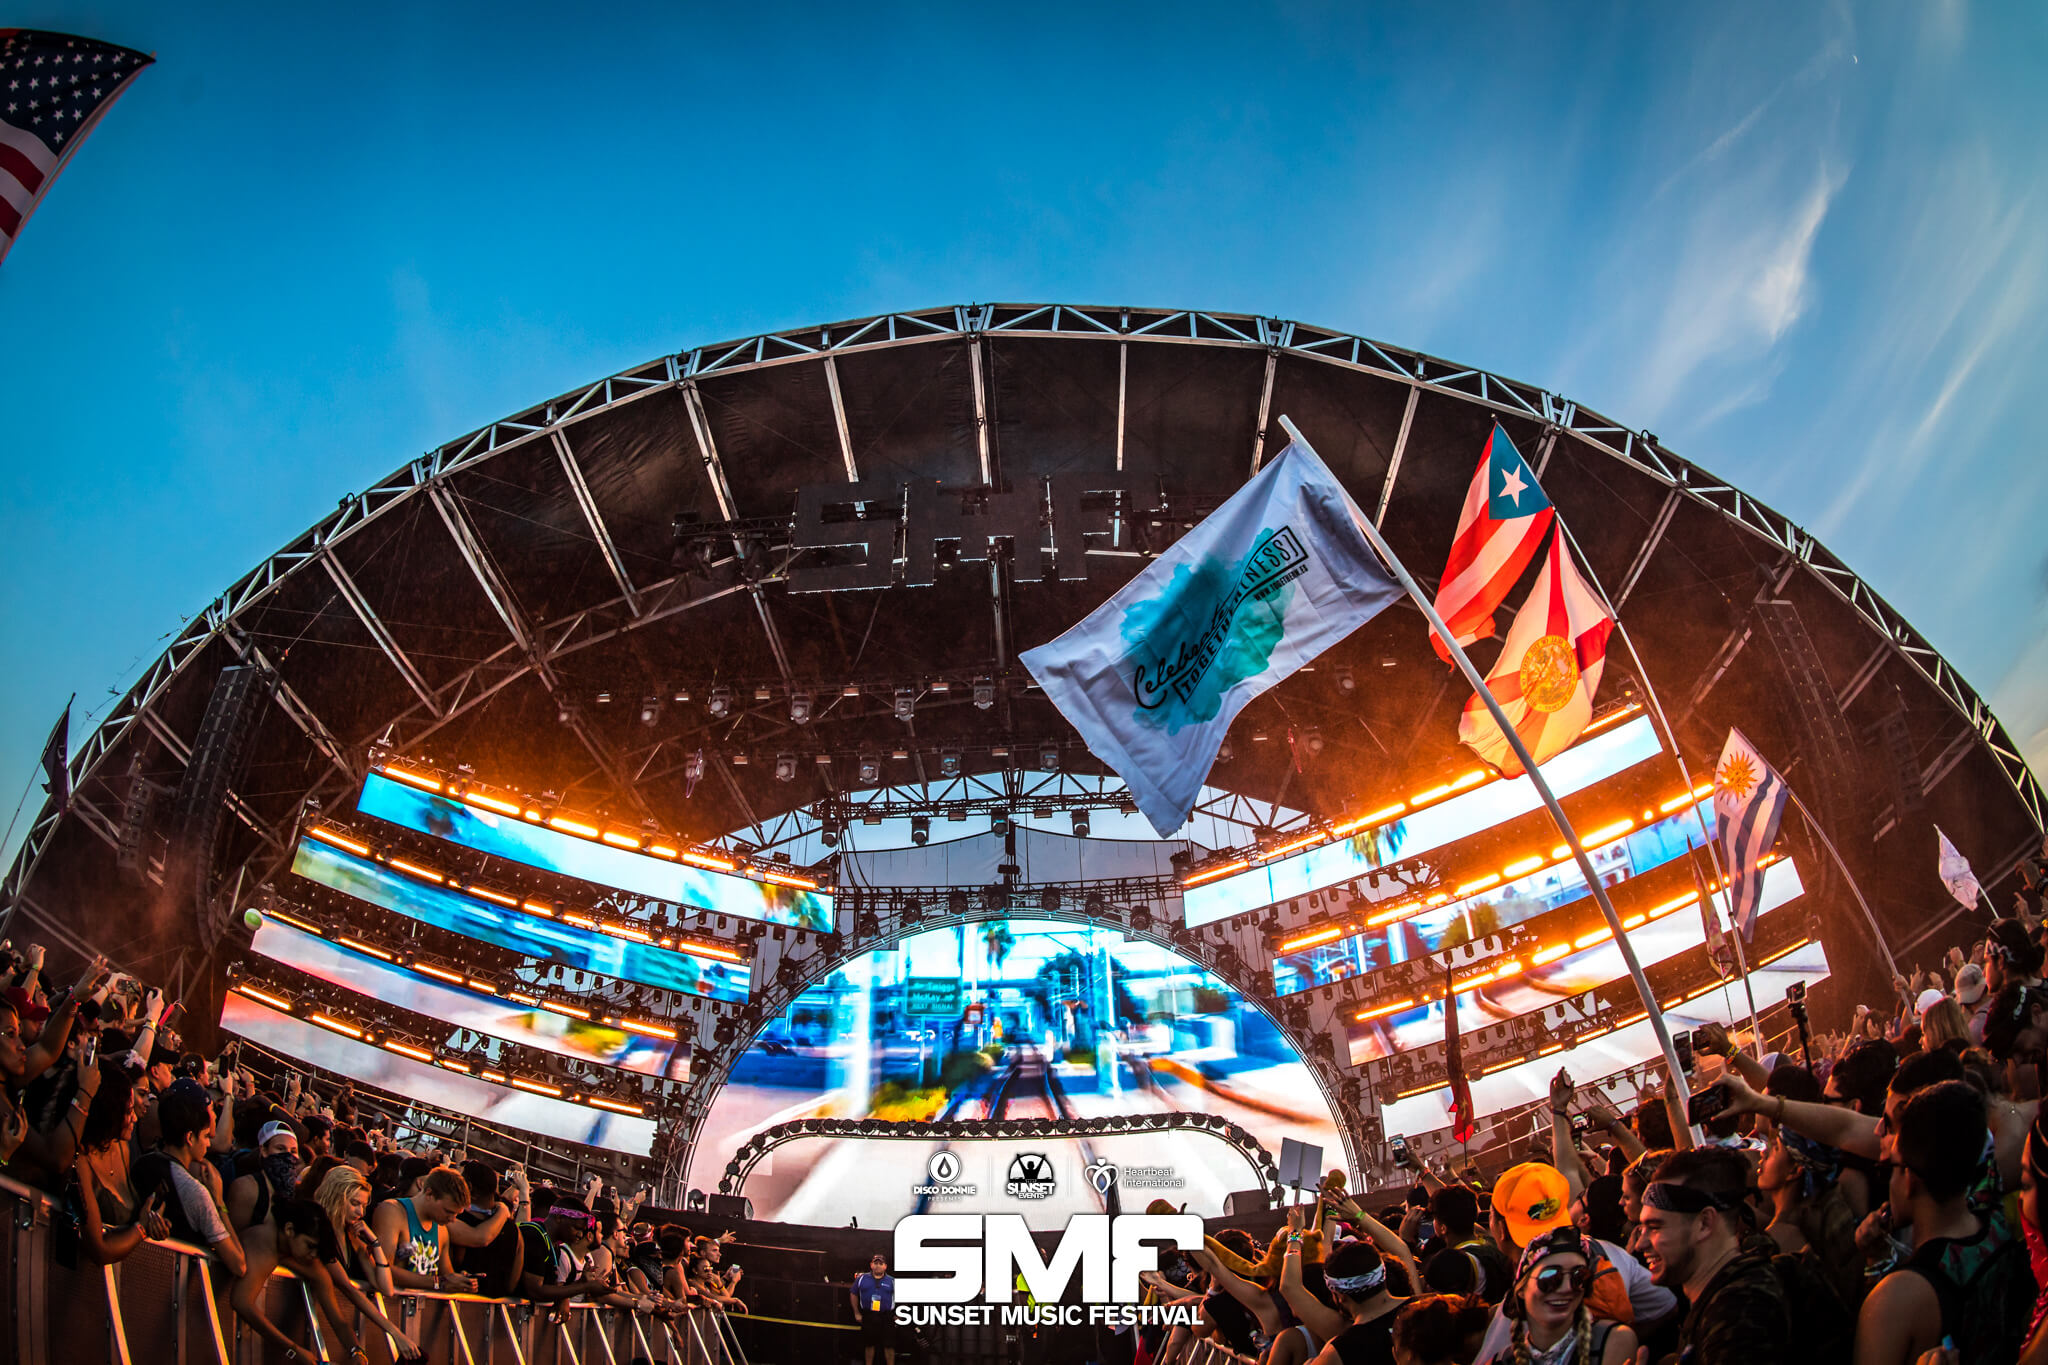 main stage getting hype at sunset